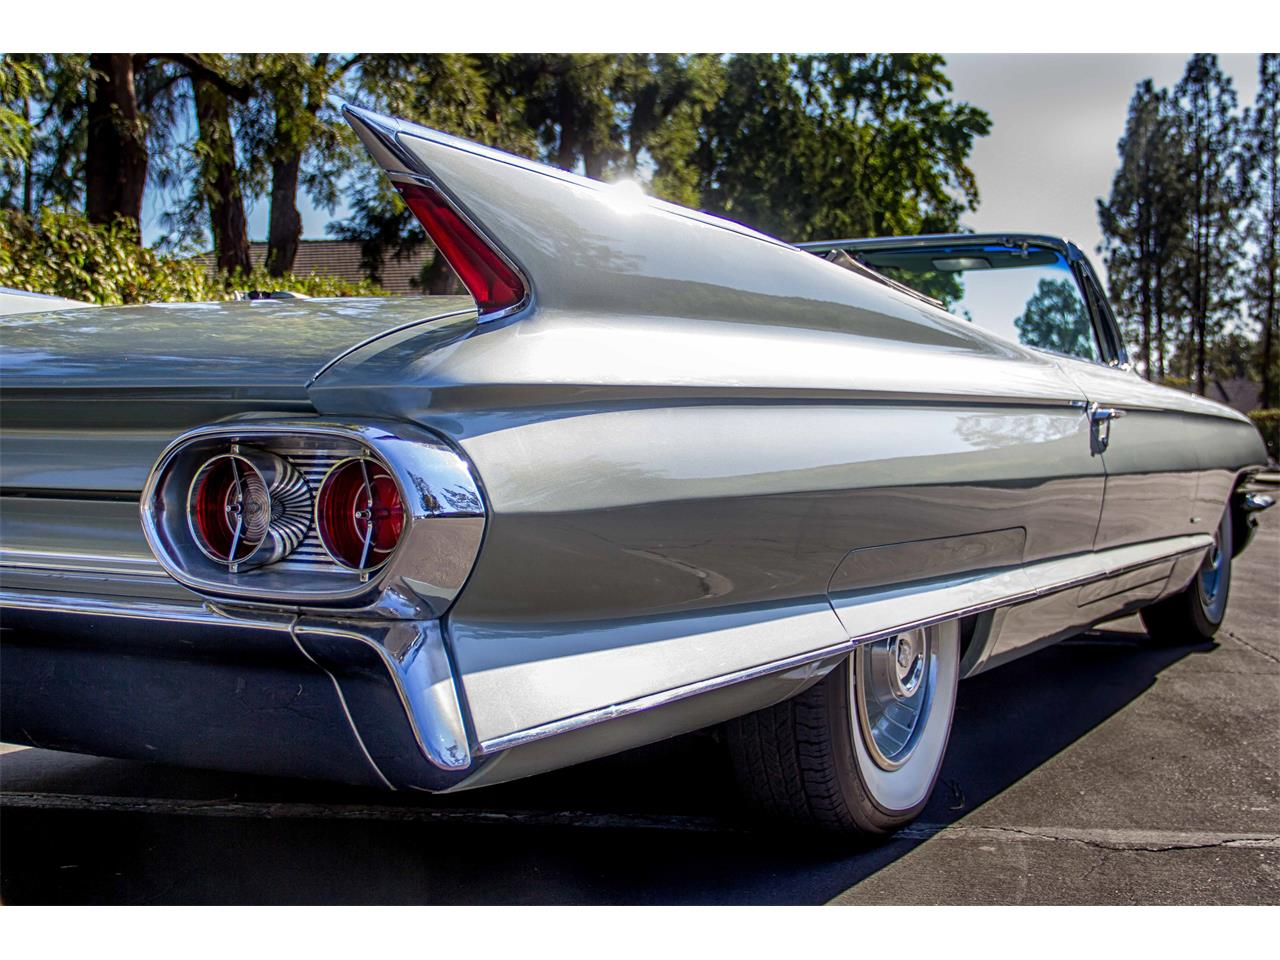 Large Picture of '61 Cadillac DeVille Offered by a Private Seller - K2GI